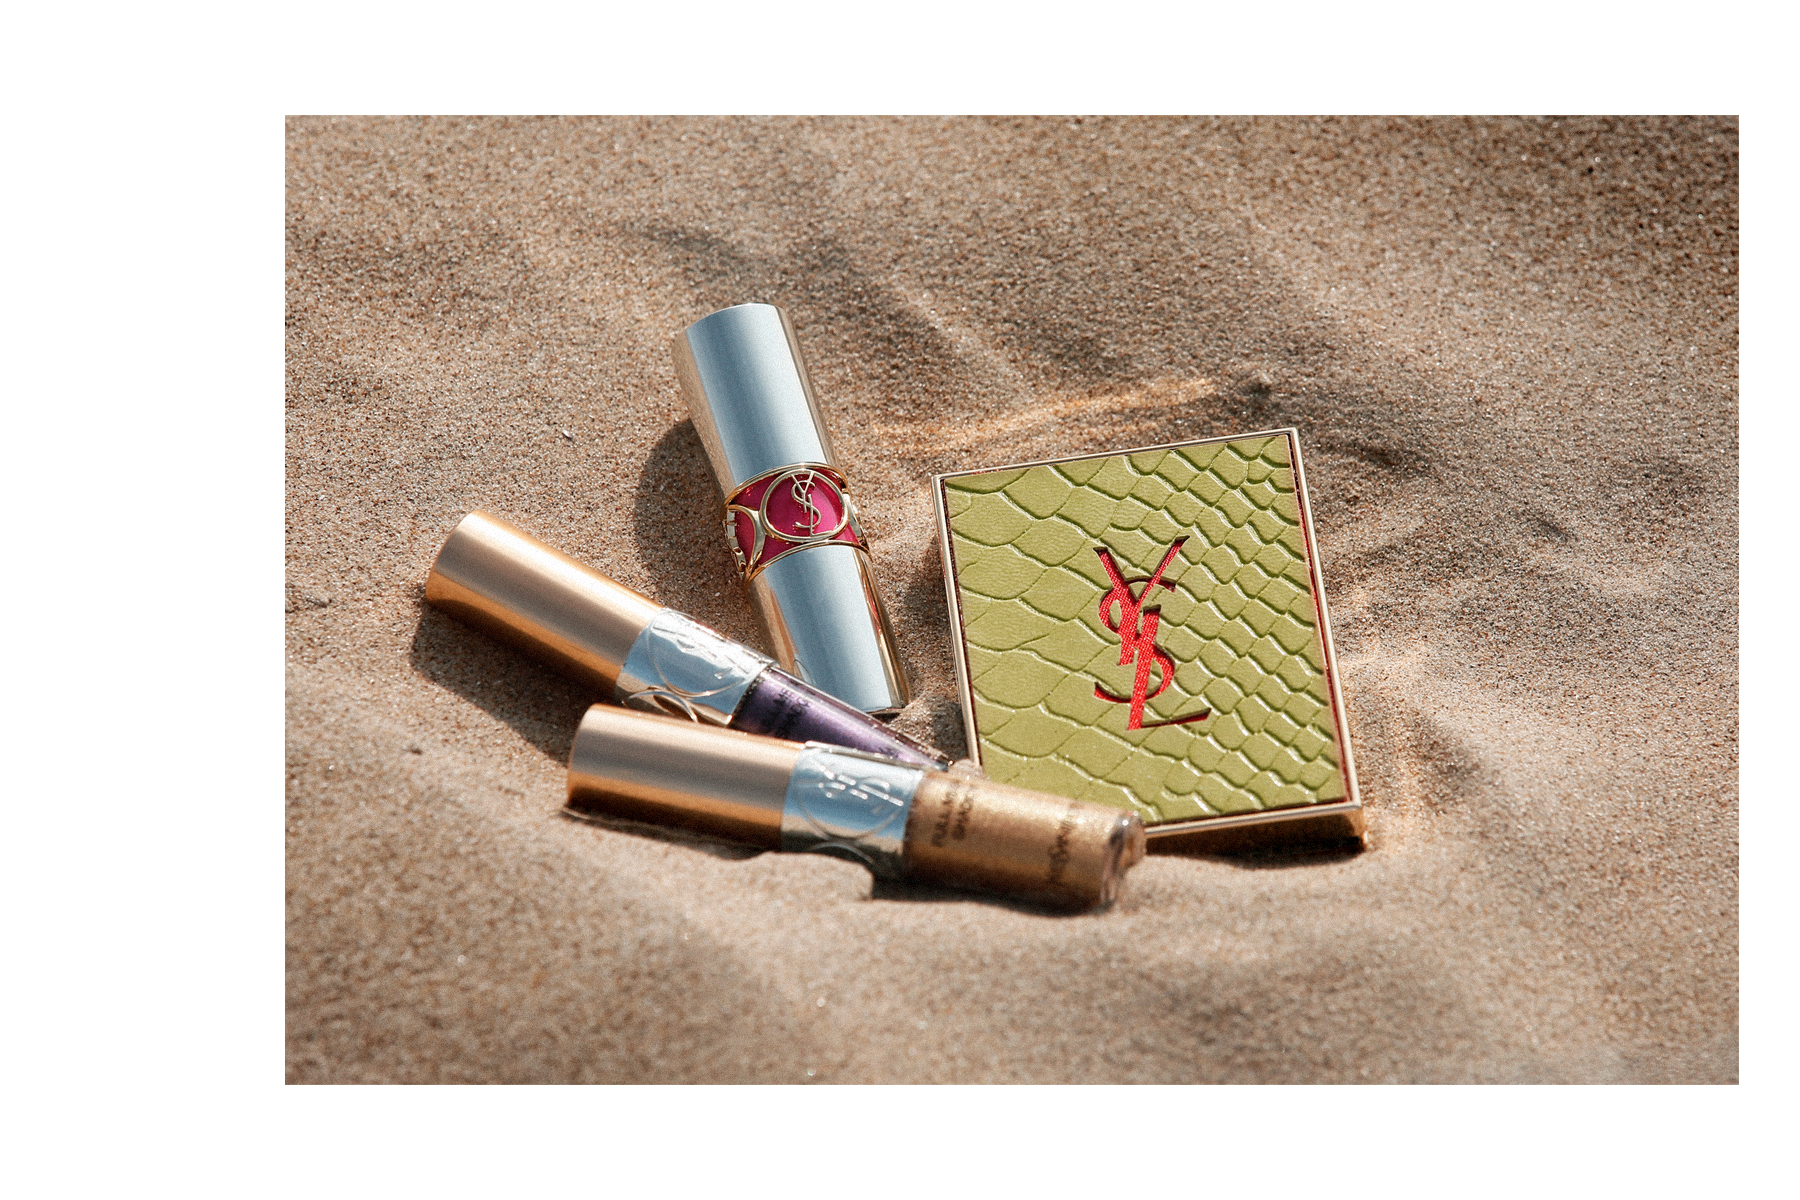 ysl make up glow glowing desert make-up beauté yves saint laurent beauty beautyblogger summer photography chic vintage style makeupblogger cats and dogs cats&dogs ricarda schernus fashionblogger düsseldorf berlin paris 2